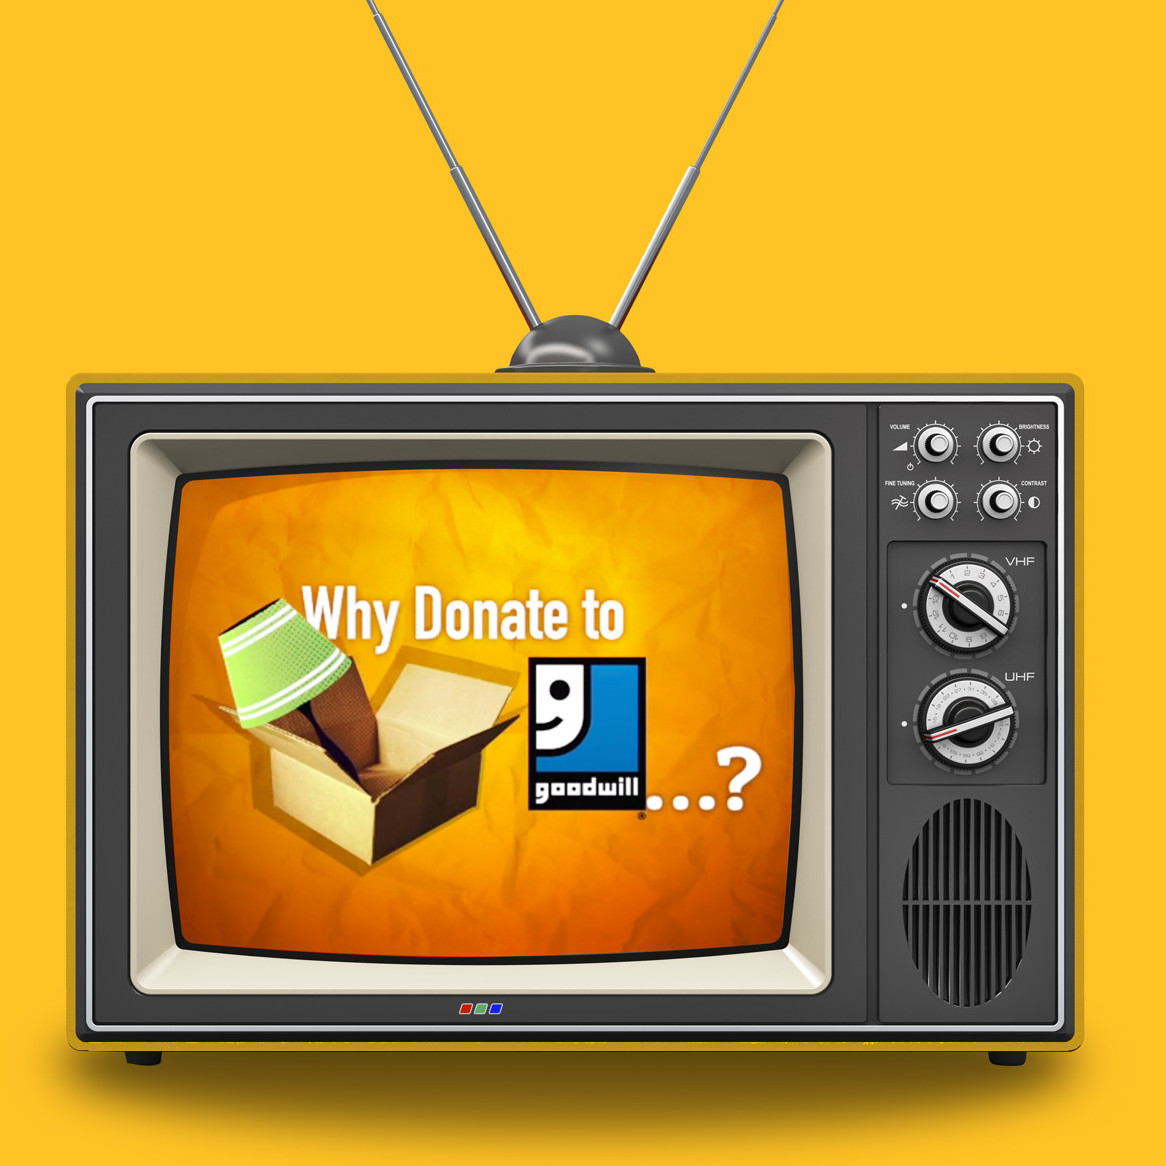 Image of a placed TV advertisement